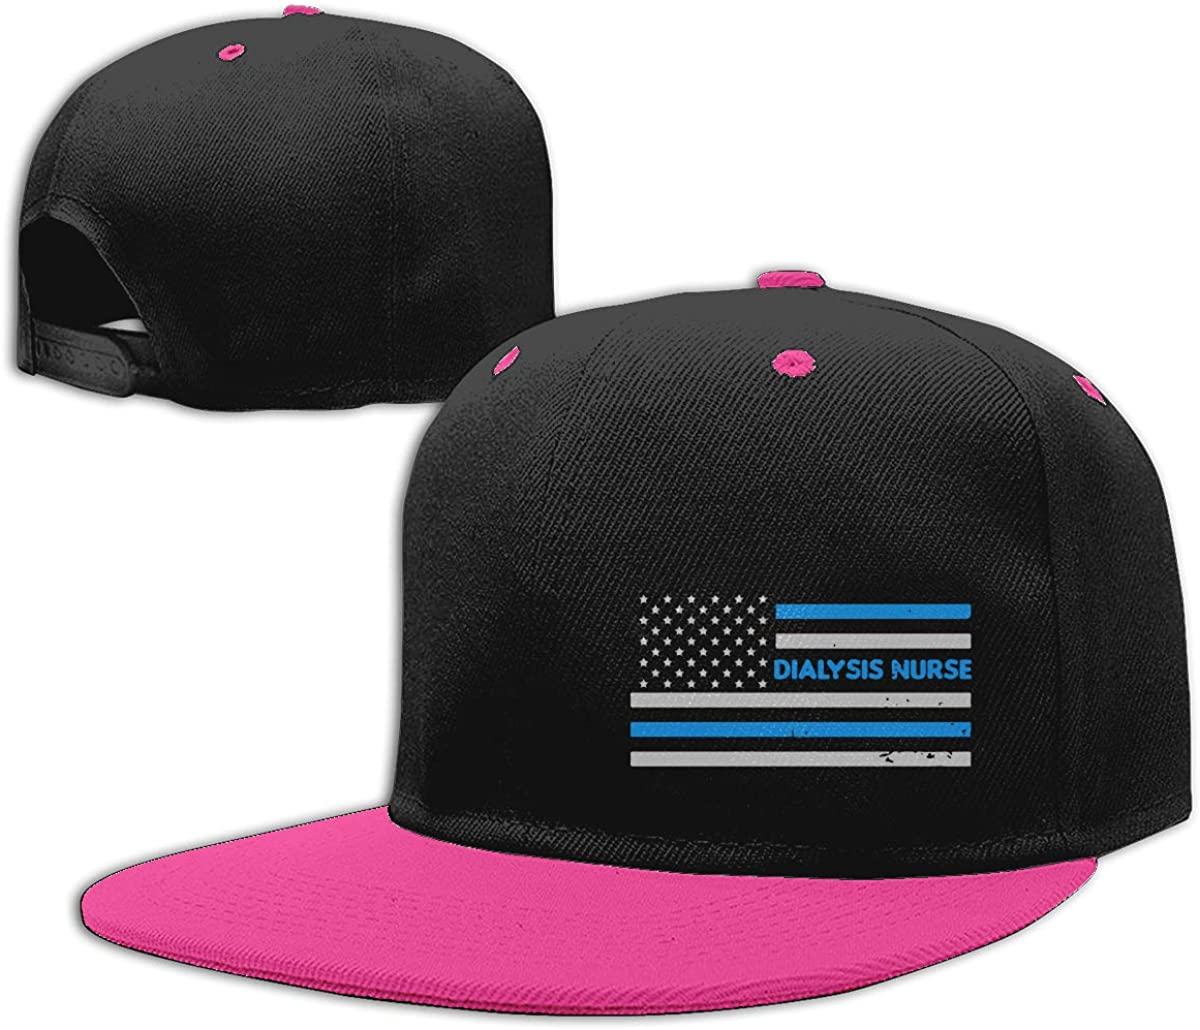 NMG-01 Women Men Plain Cap Dialysis Nurse American Flag Printed Hip Hop Baseball Caps